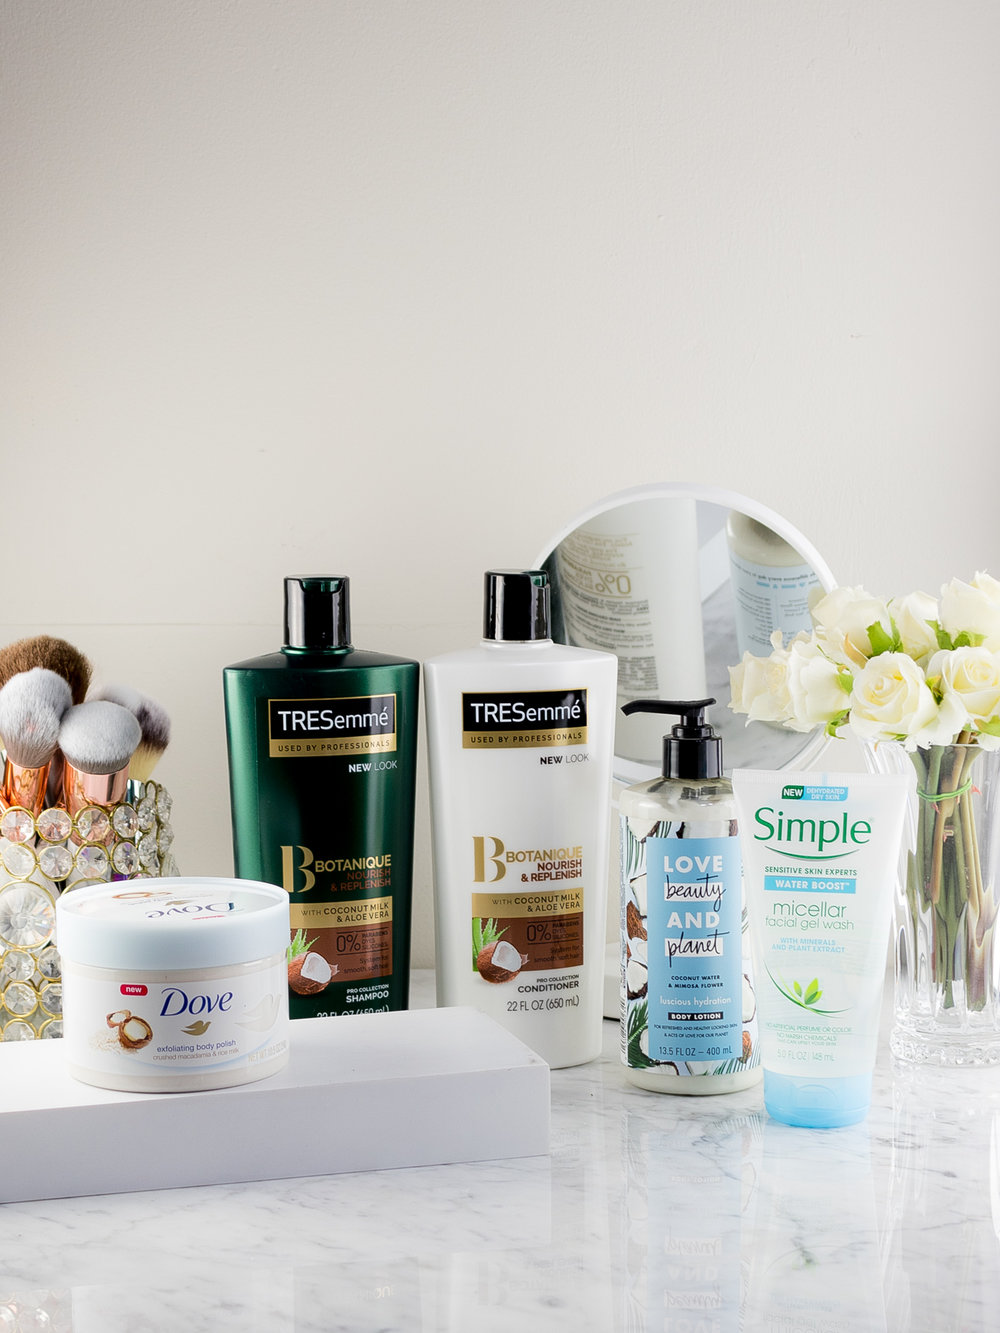 A NEW Personal Care Routine for Spring with Unilever Products